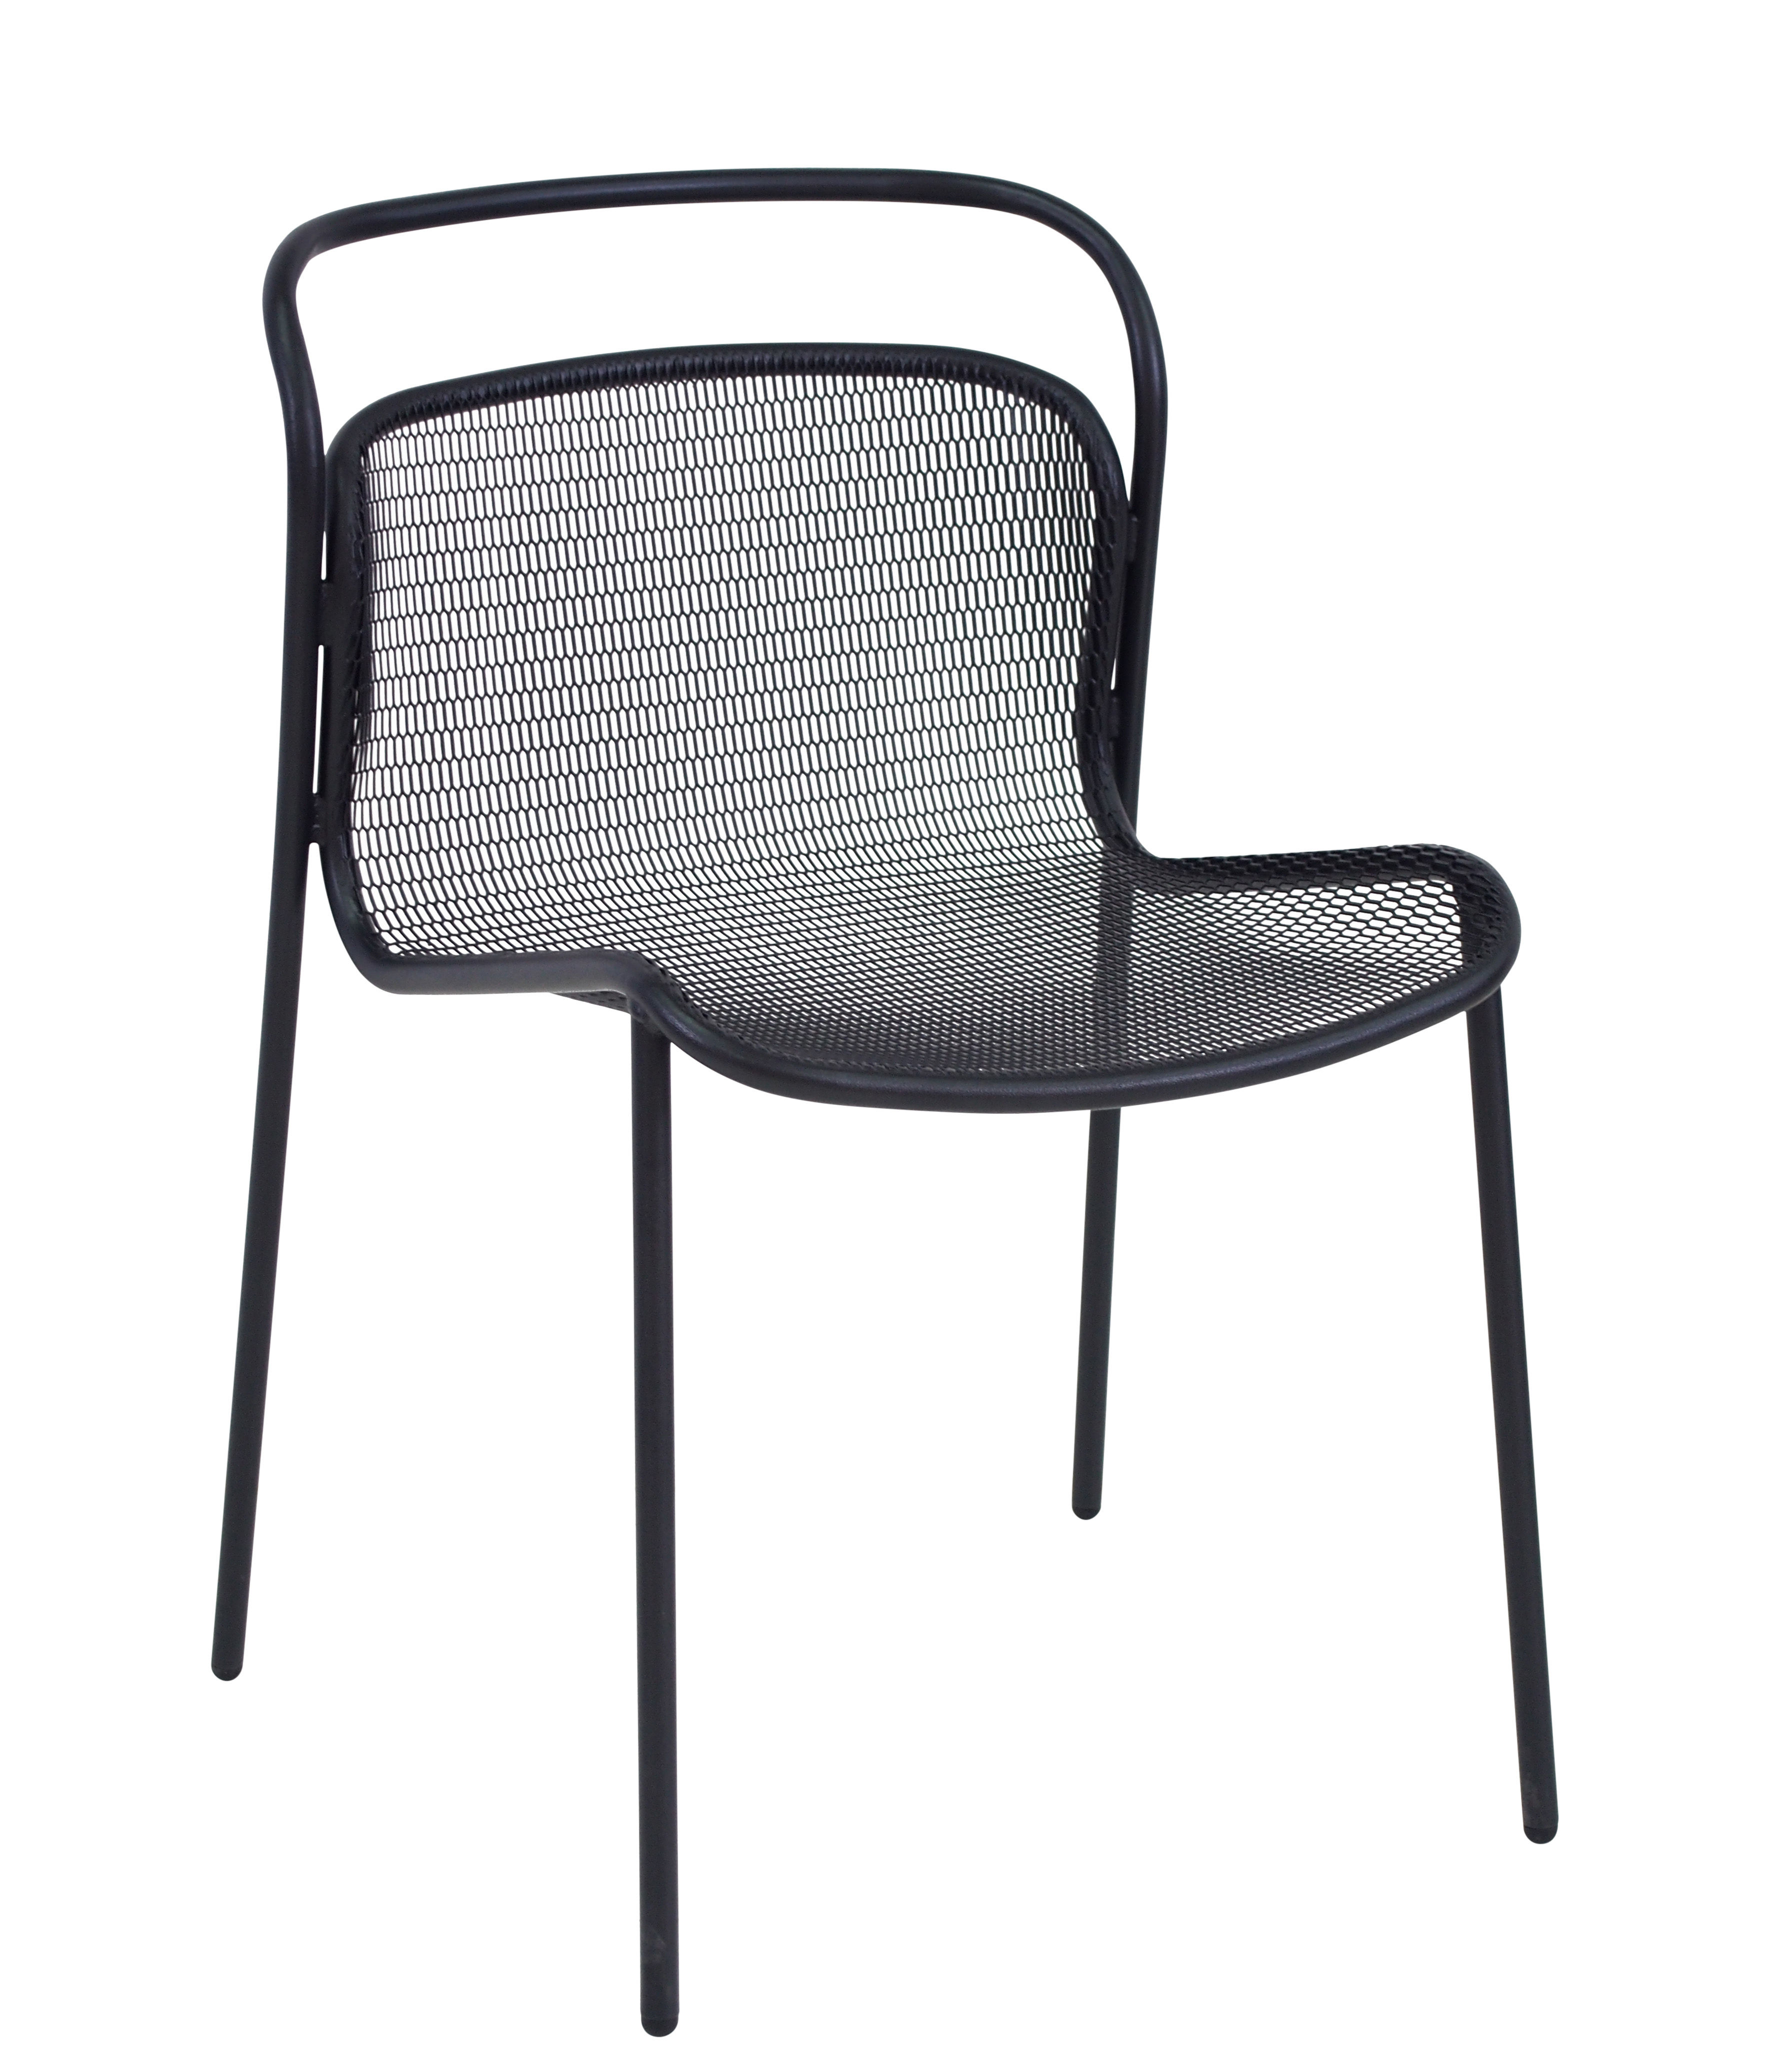 Furniture - Chairs - Modern Stacking chair - / Metal by Emu - Black - Varnished steel